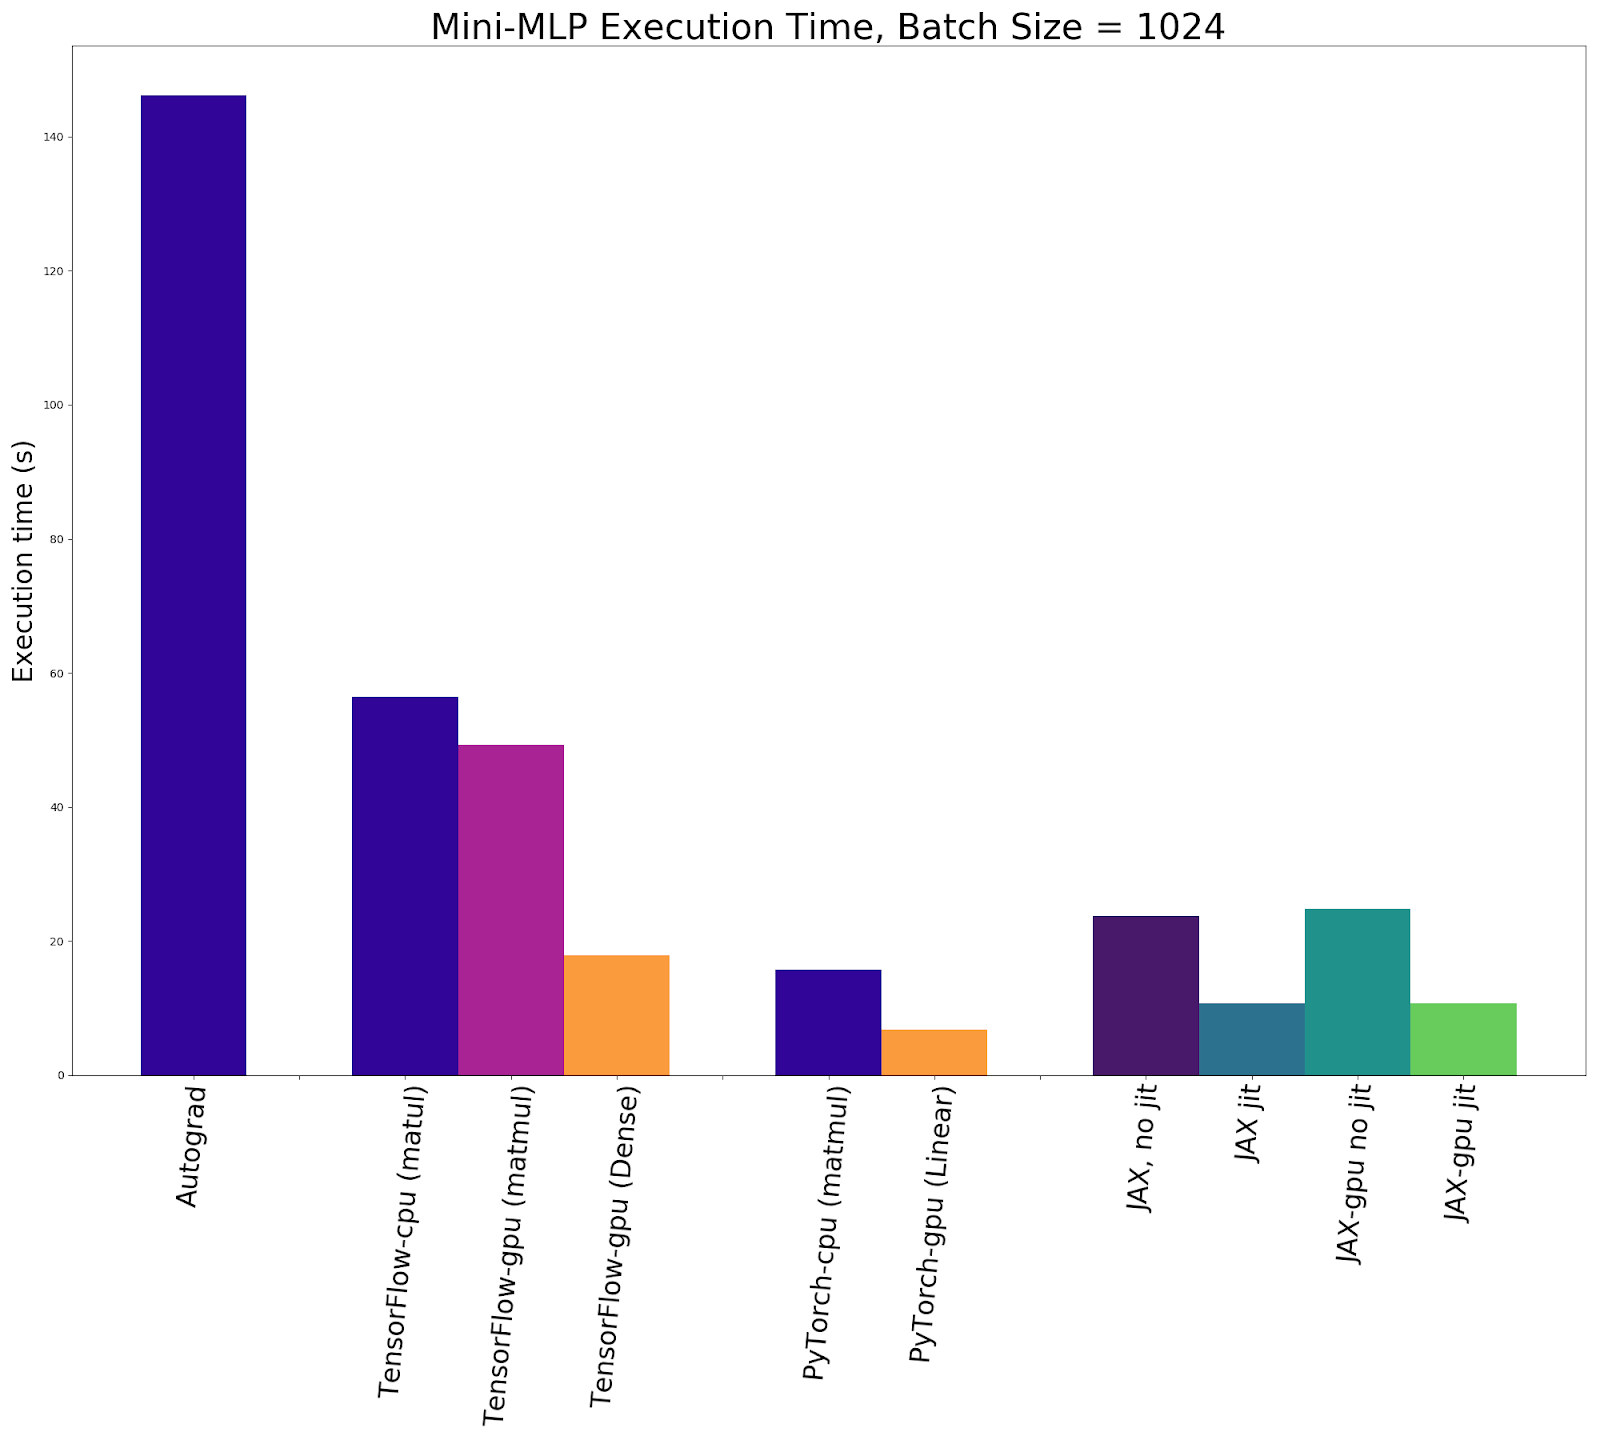 Execution times for 10,000 updates with a batch size of 1024